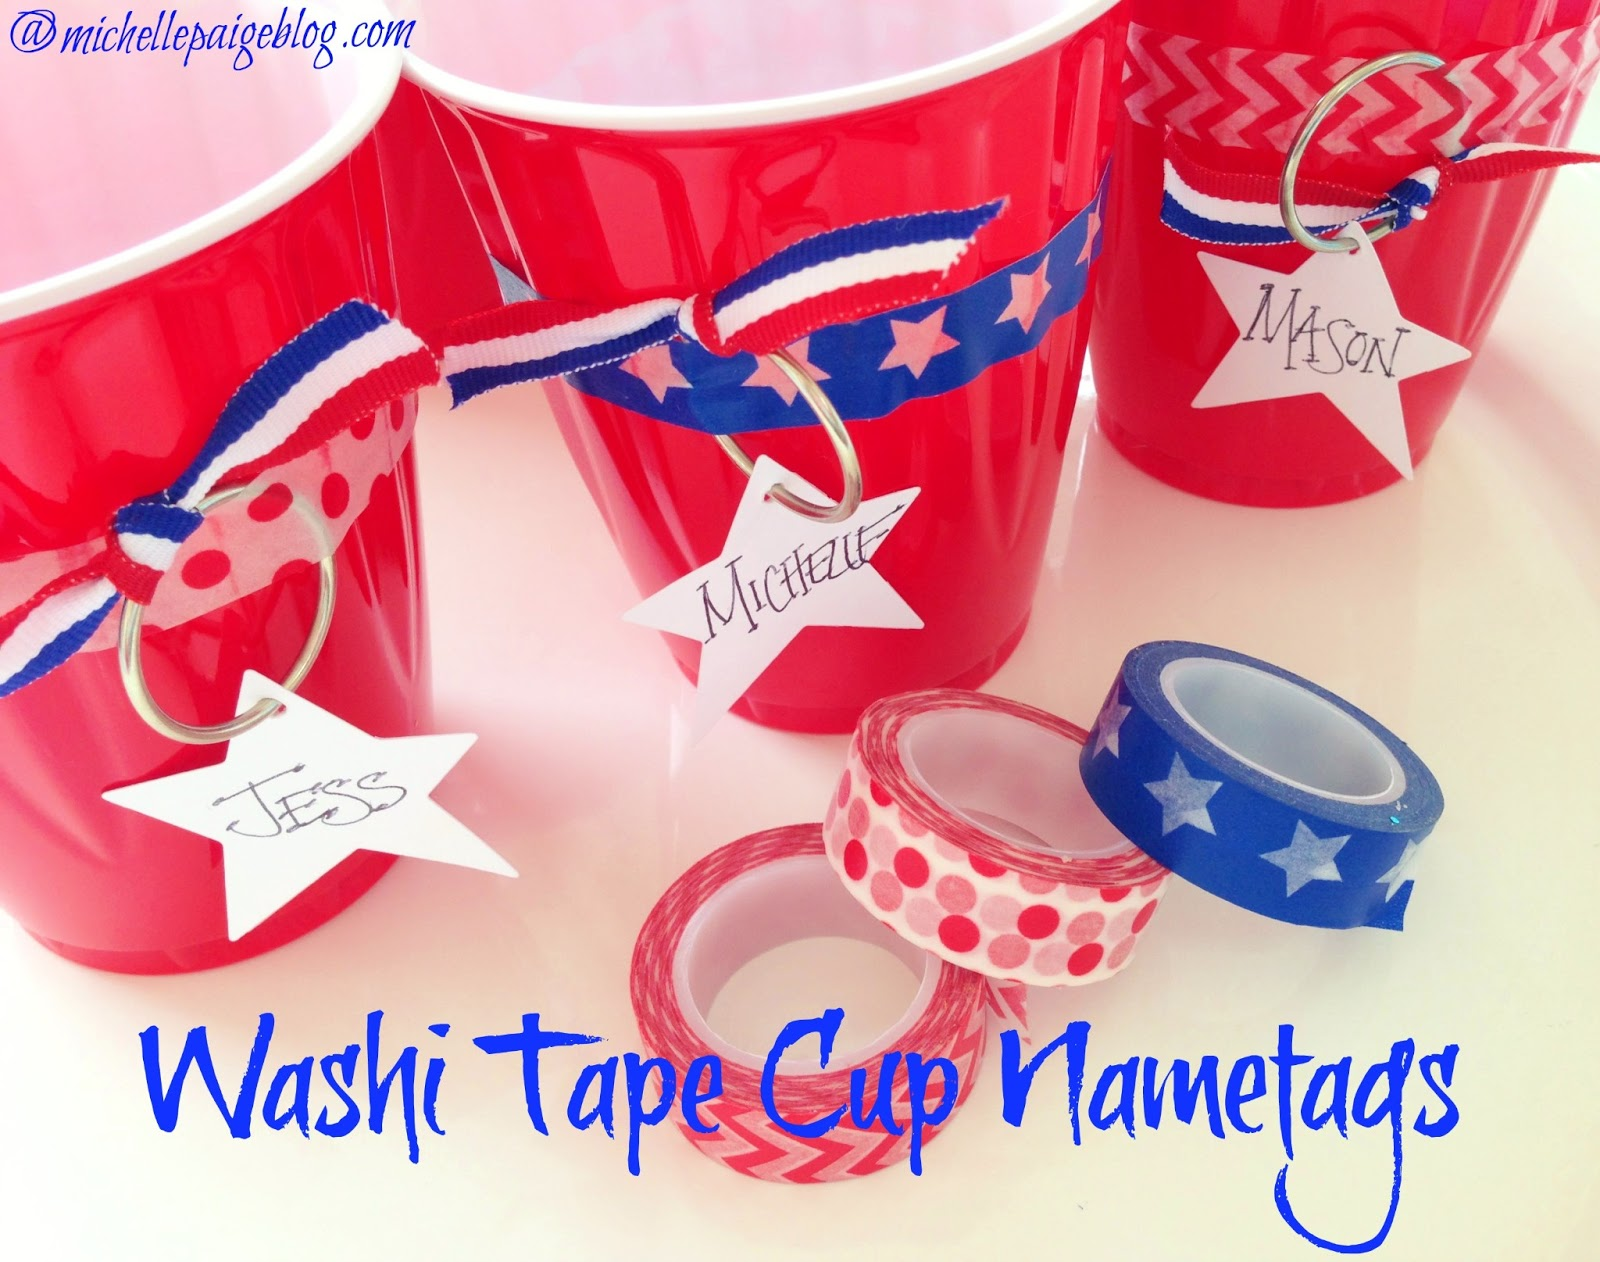 Washi Tape Cup Nametags